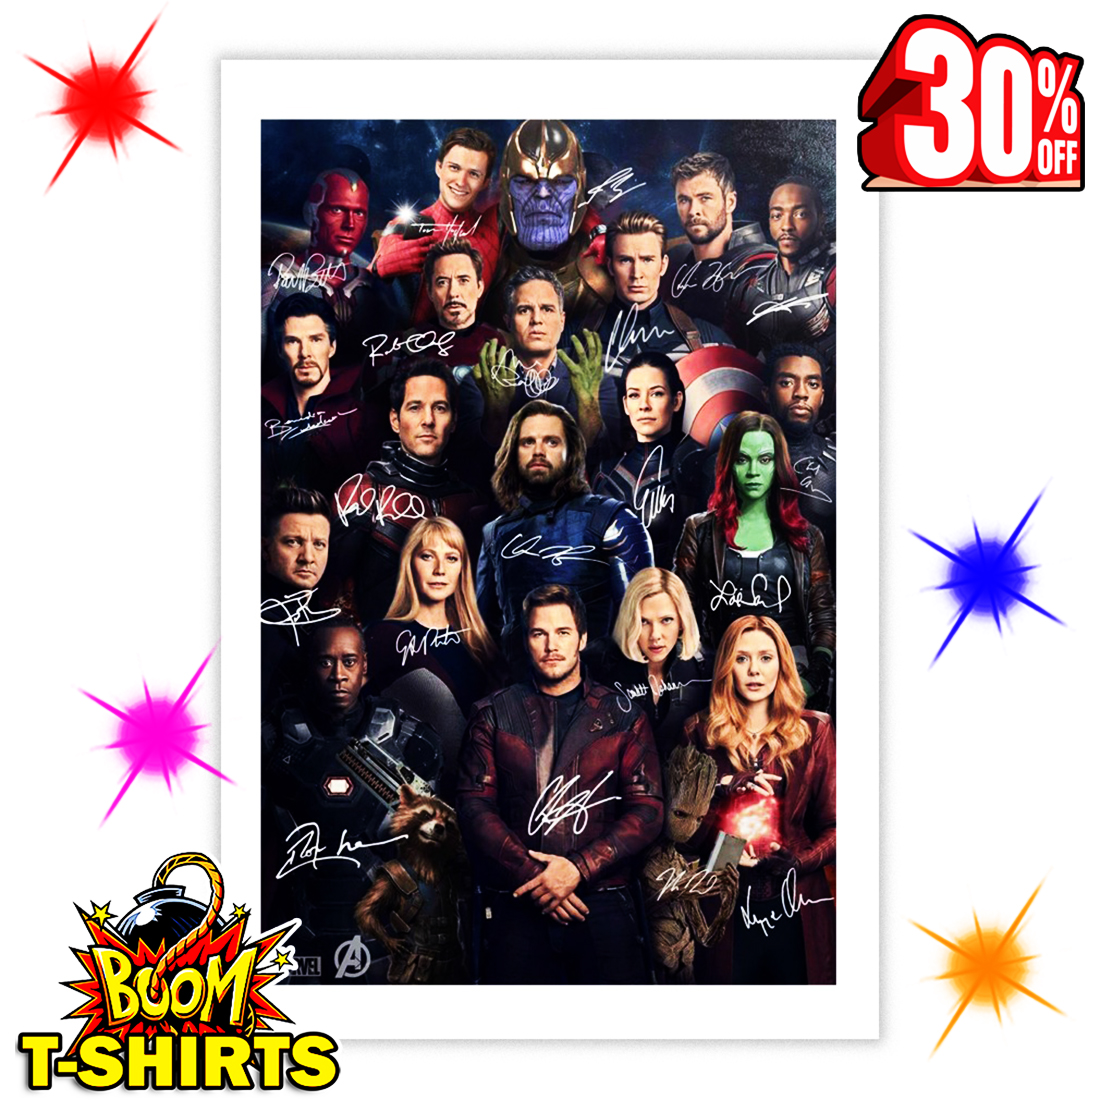 sale off avengers endgame character signature poster